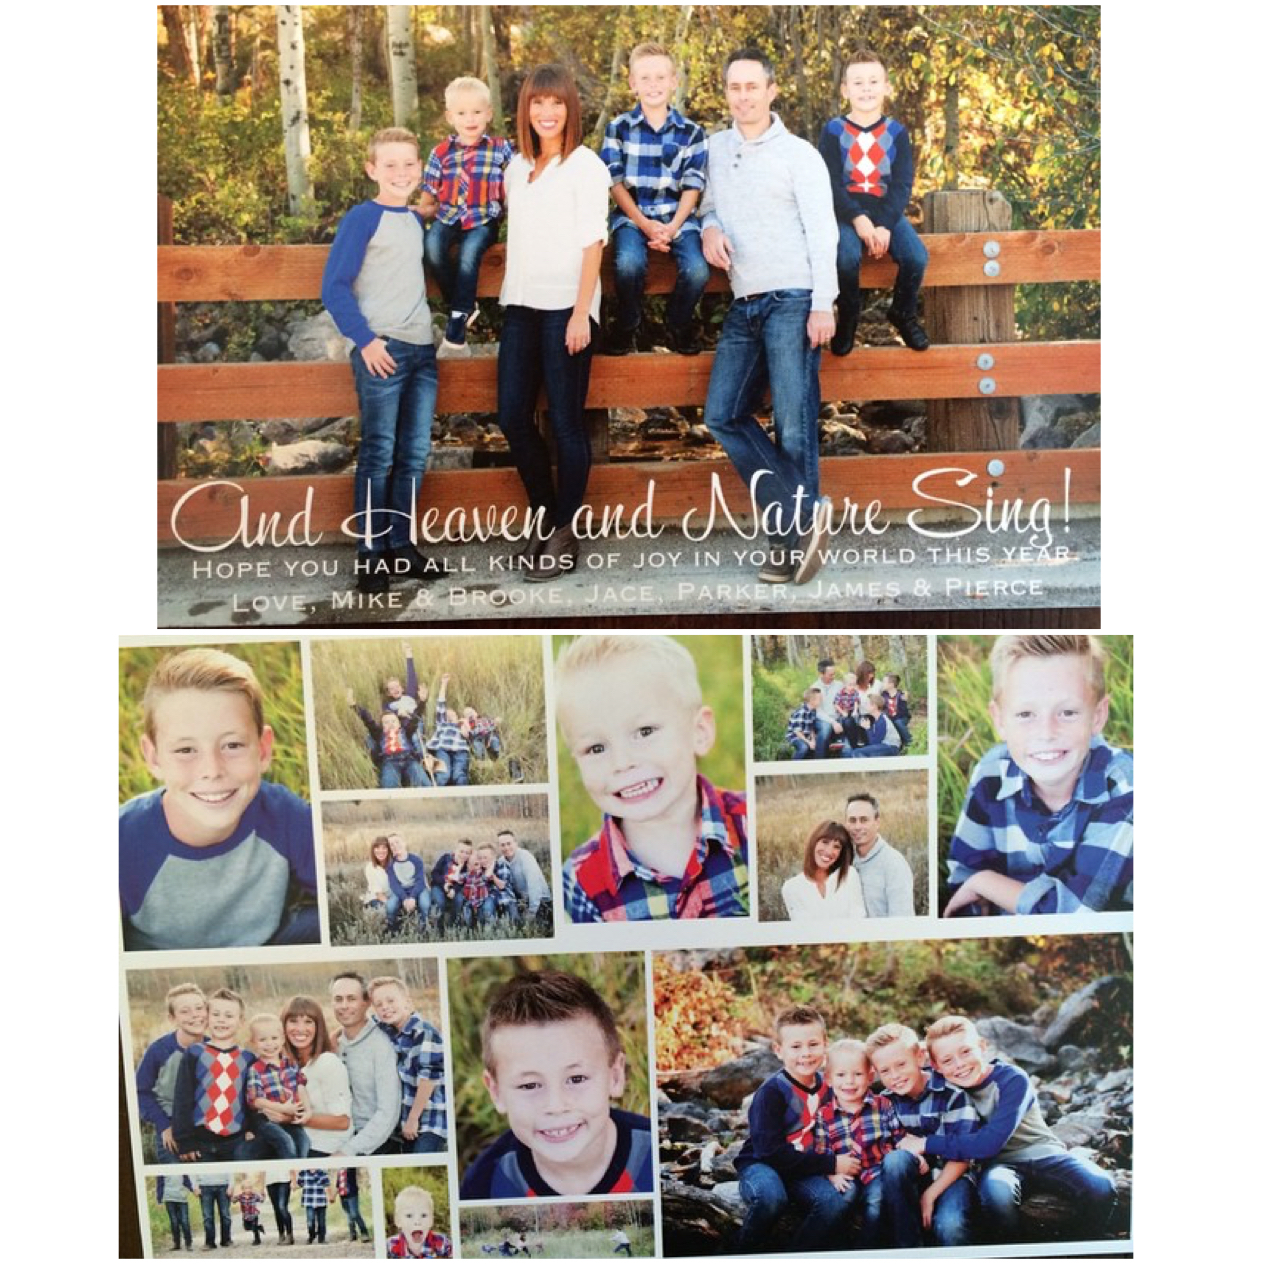 100 Personalized, Photo Christmas Cards for $60! | Brooke Romney Writes